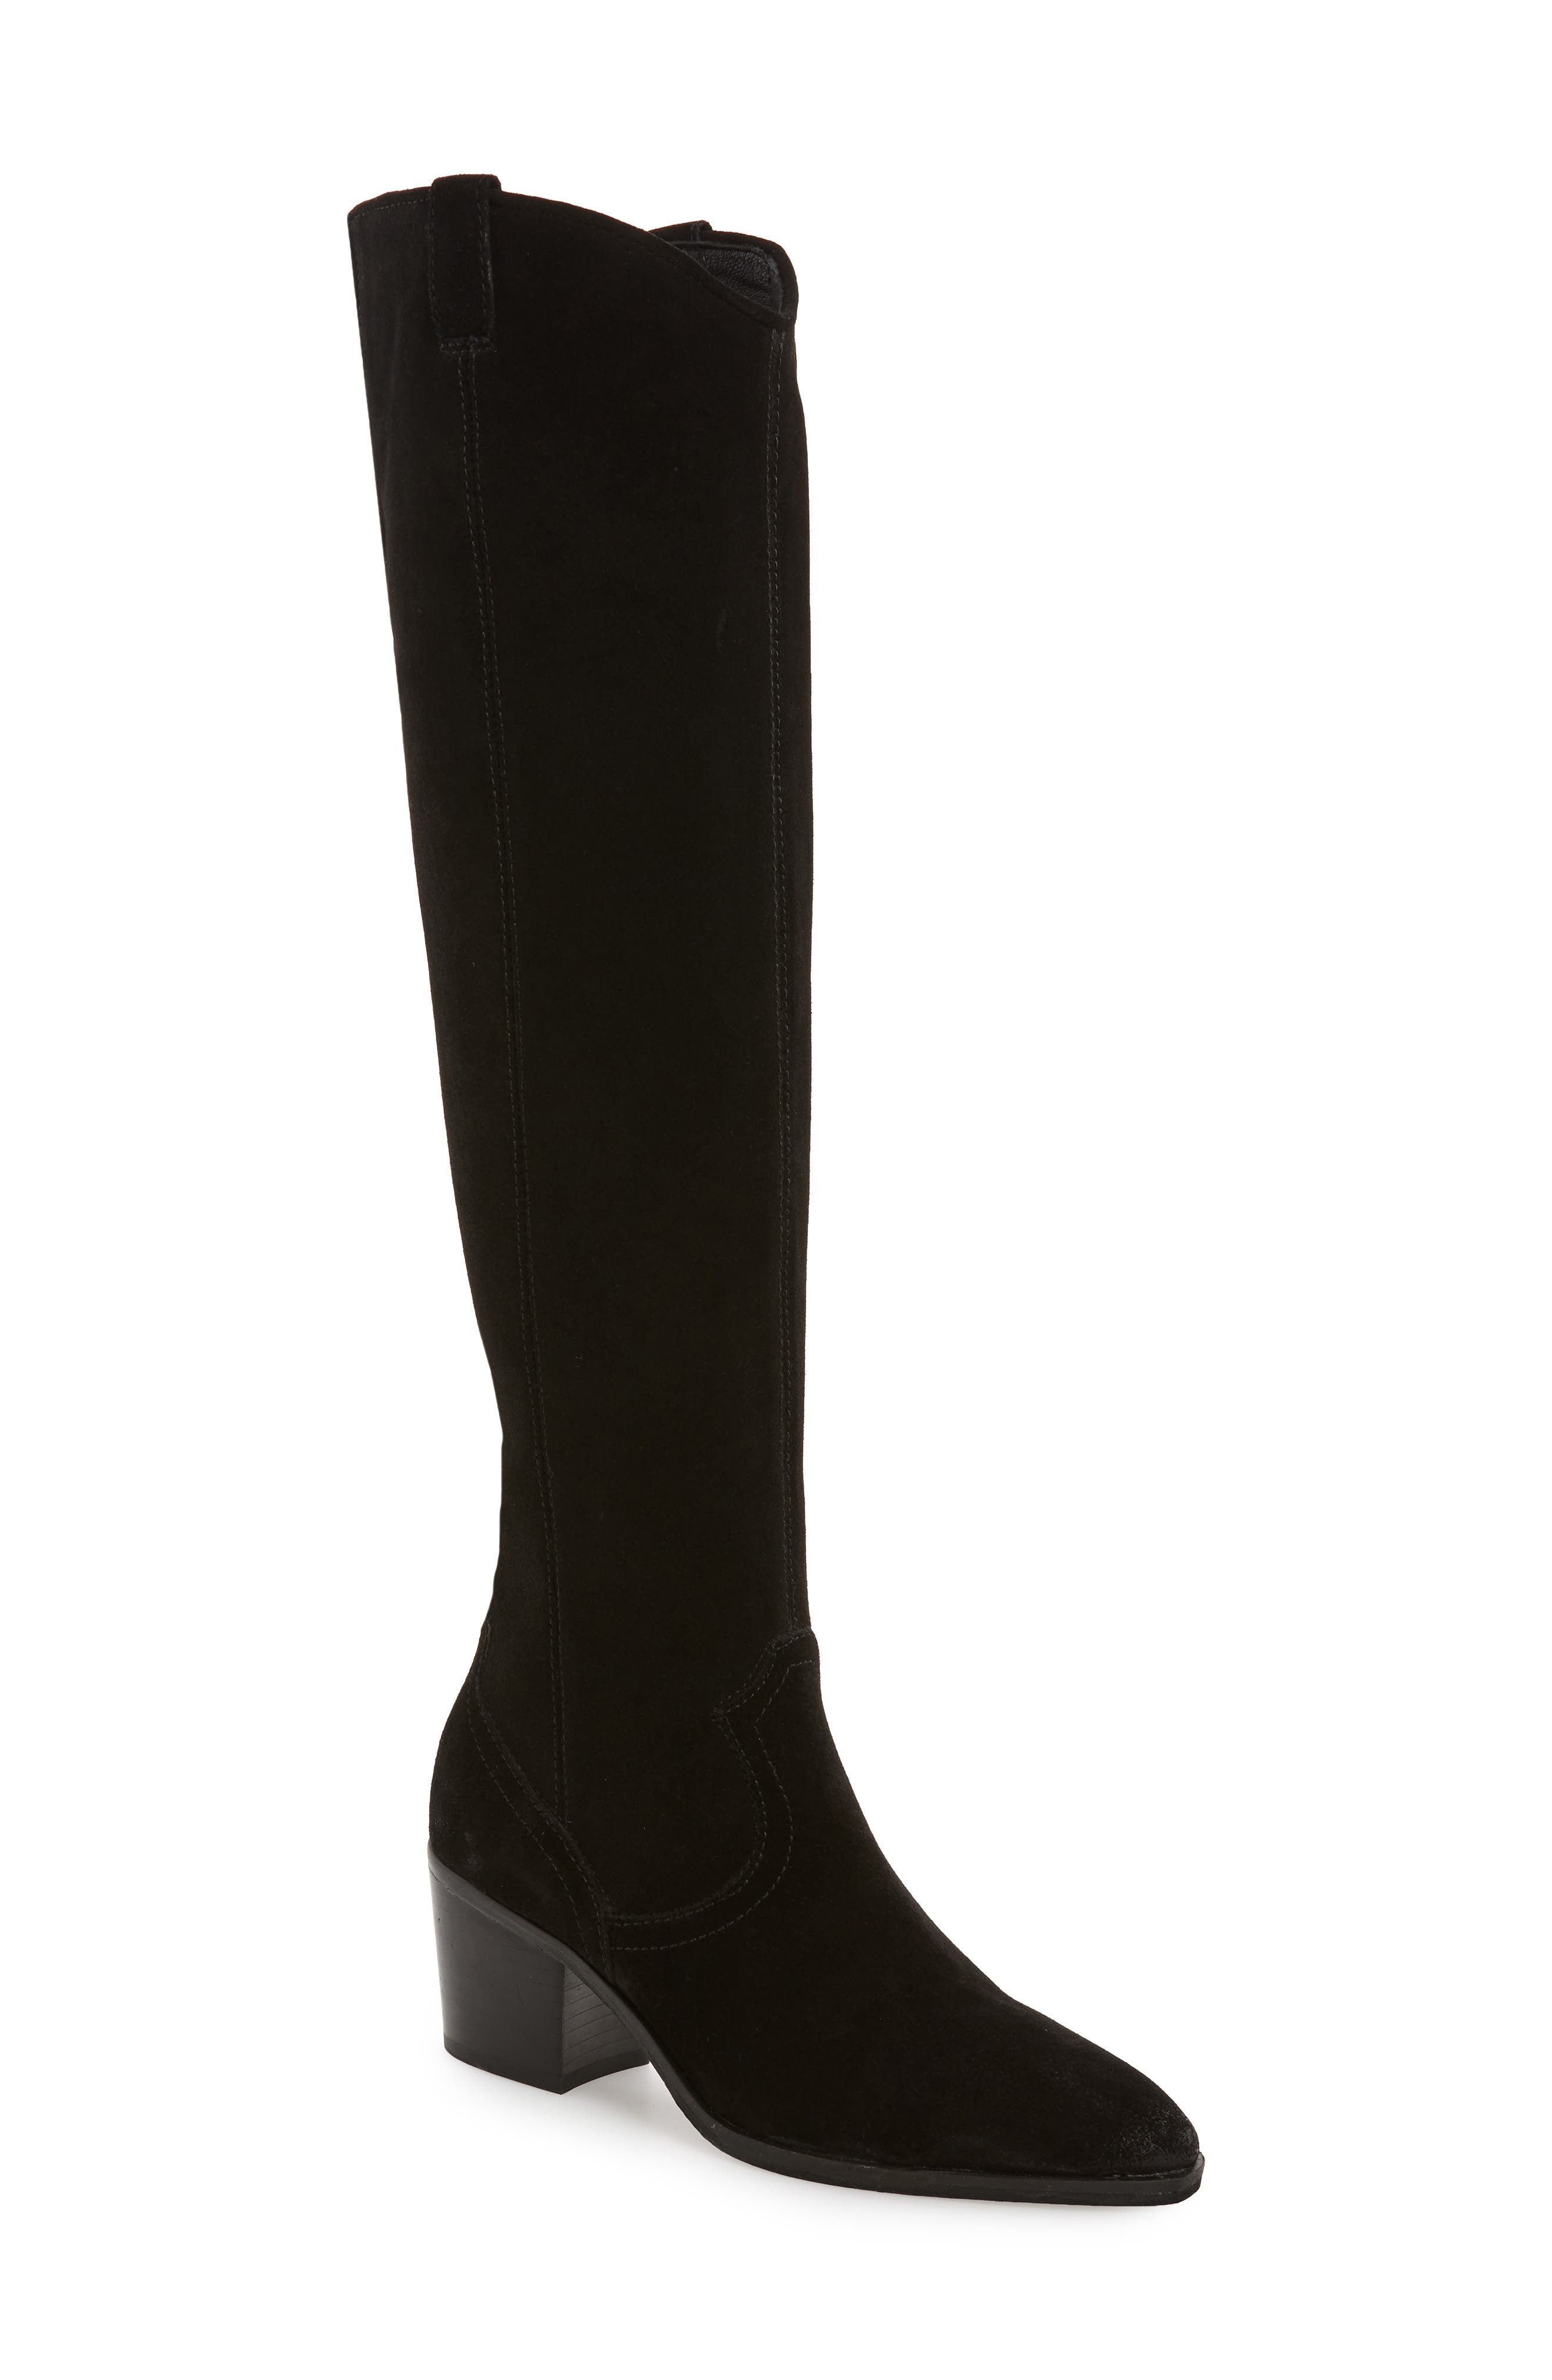 Sbicca Delano Over The Knee Boot- Black